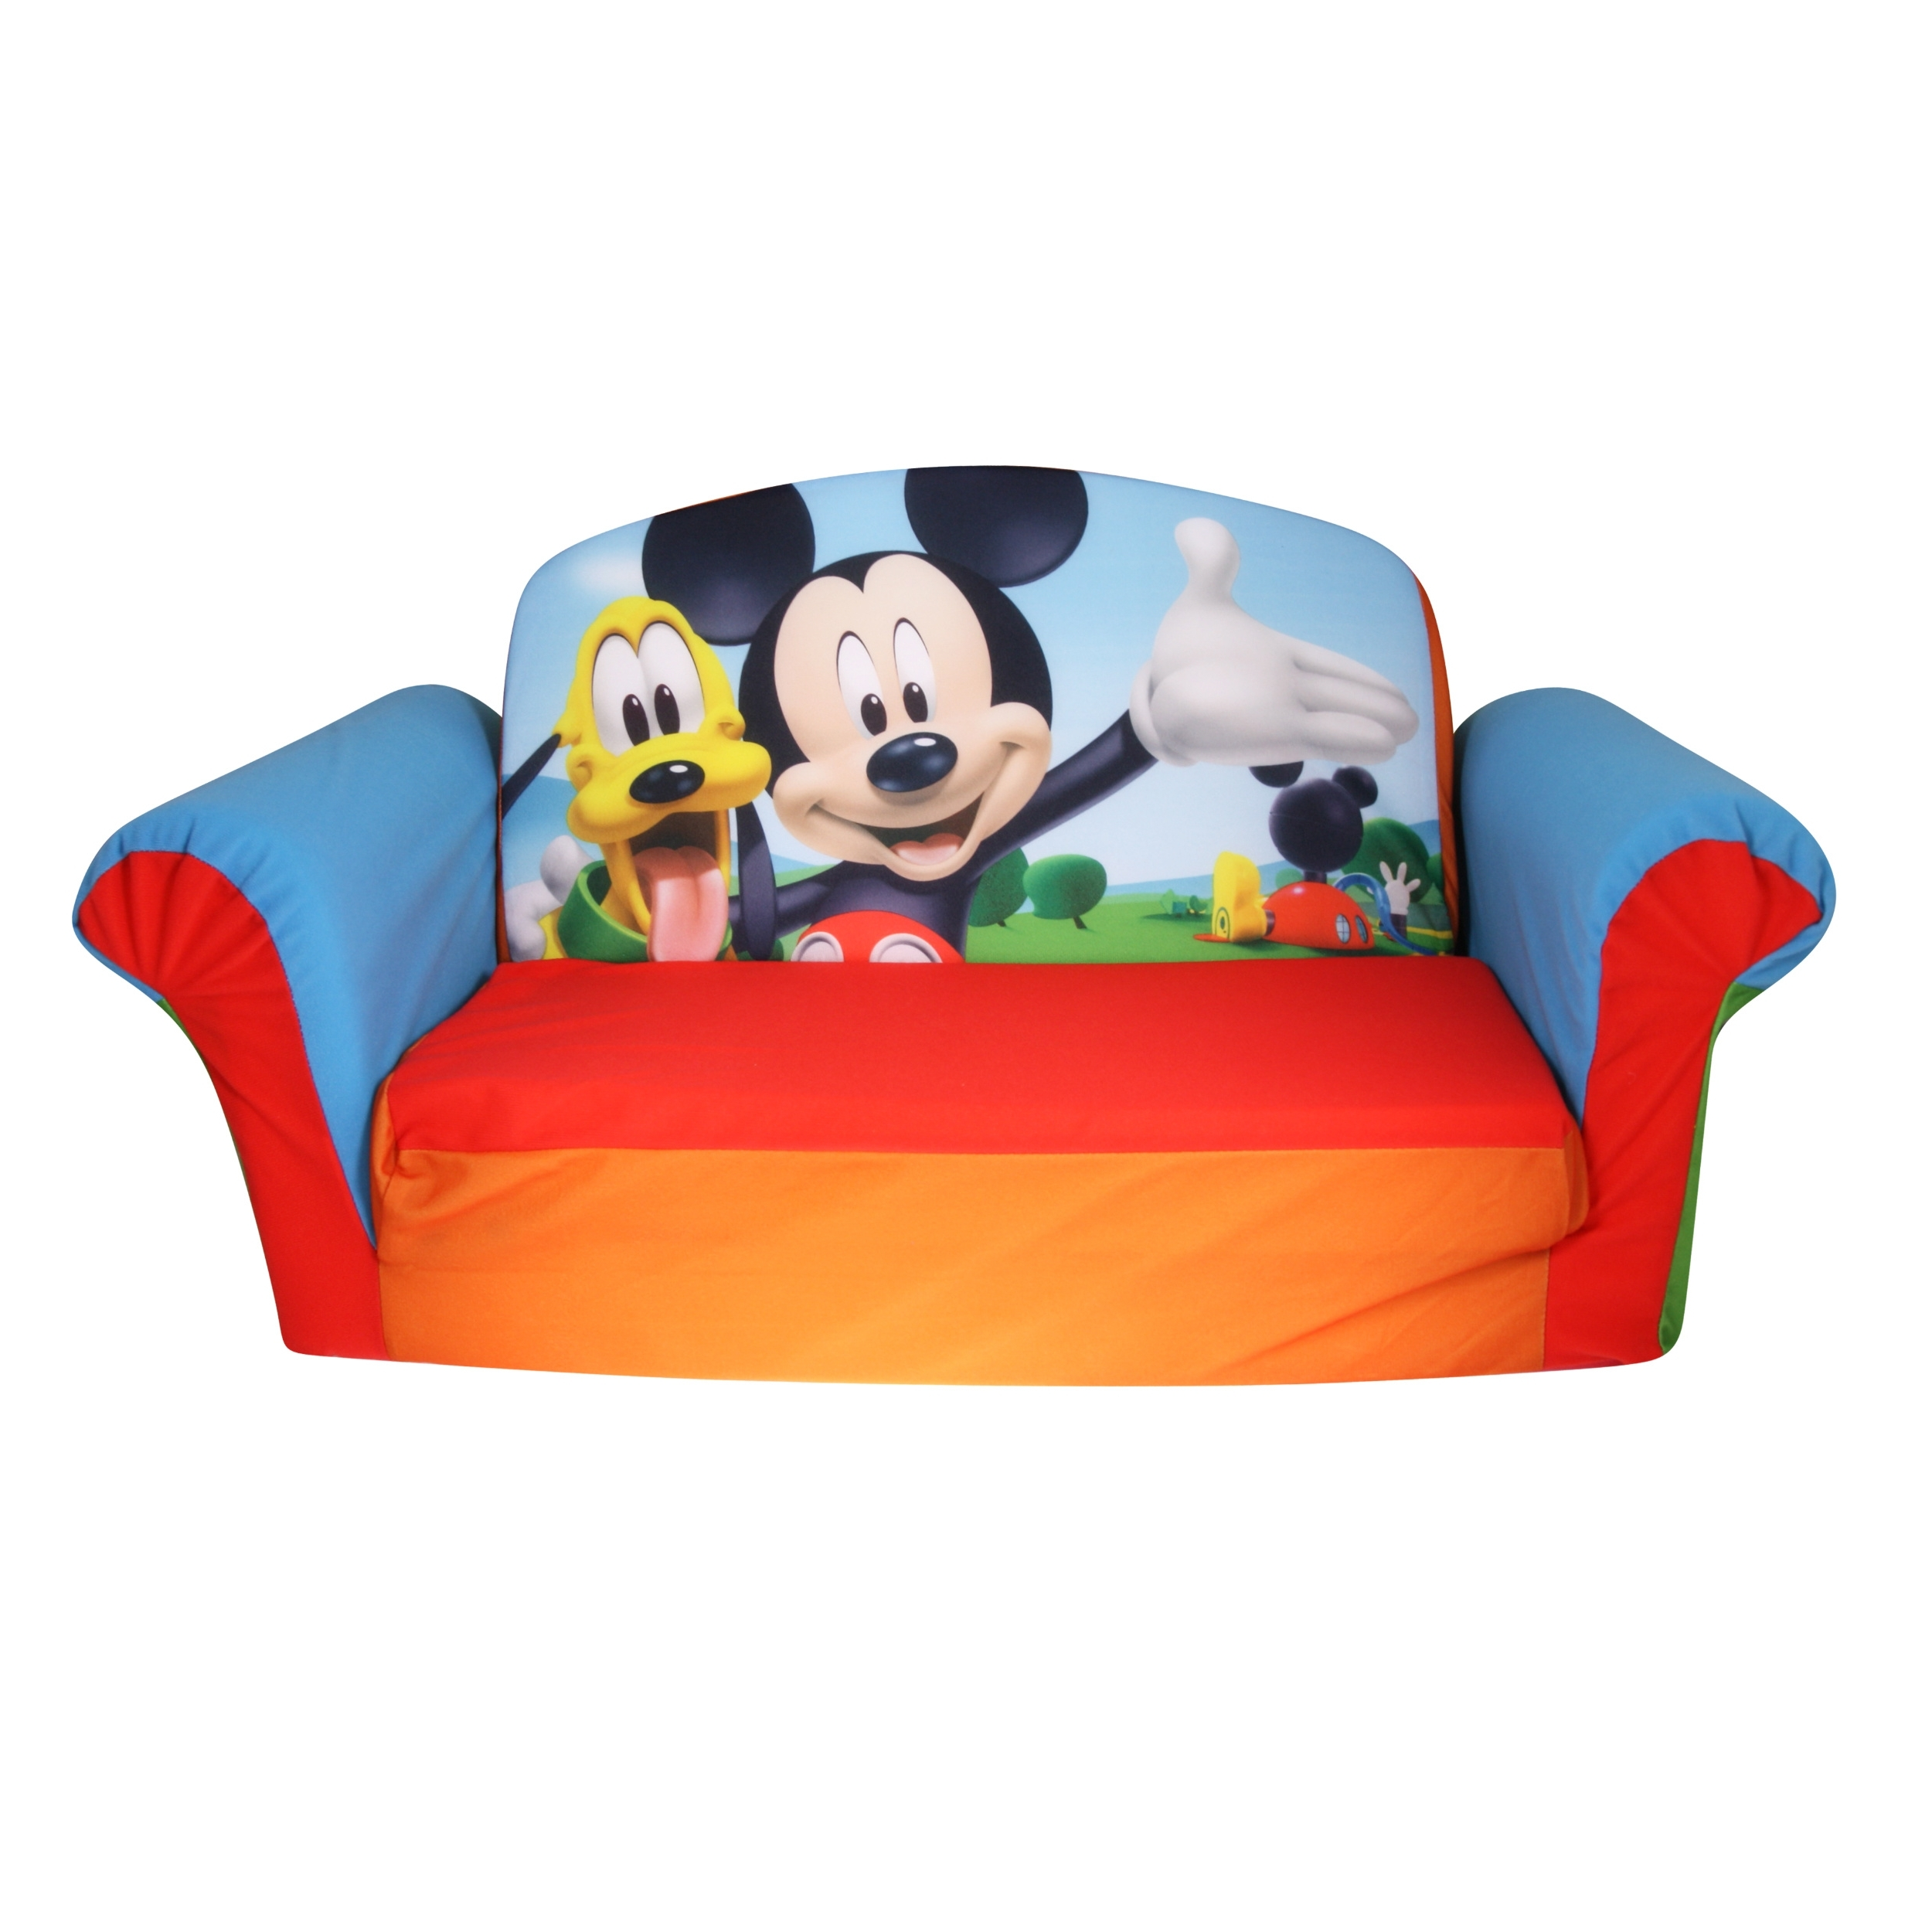 Widely Used Fold Up Sofa Chairs Regarding Disney Mickey Mouse, Toddler 2 In 1 Flip Open Foam Sofa Chair (View 13 of 15)